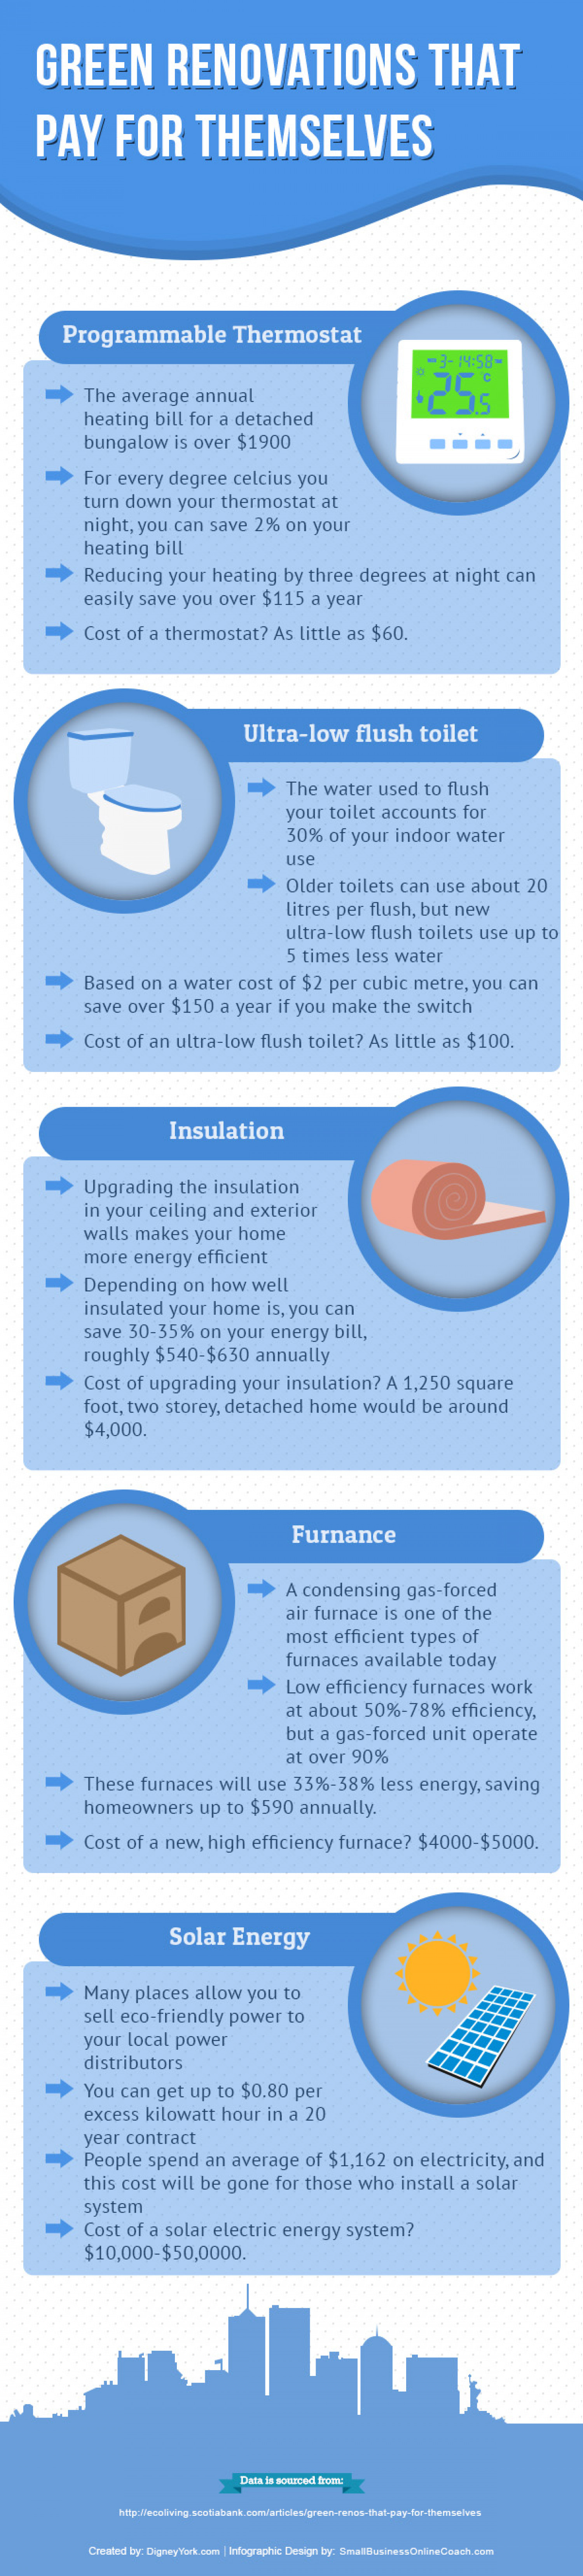 Green Renovations that Pay for Themselves Infographic